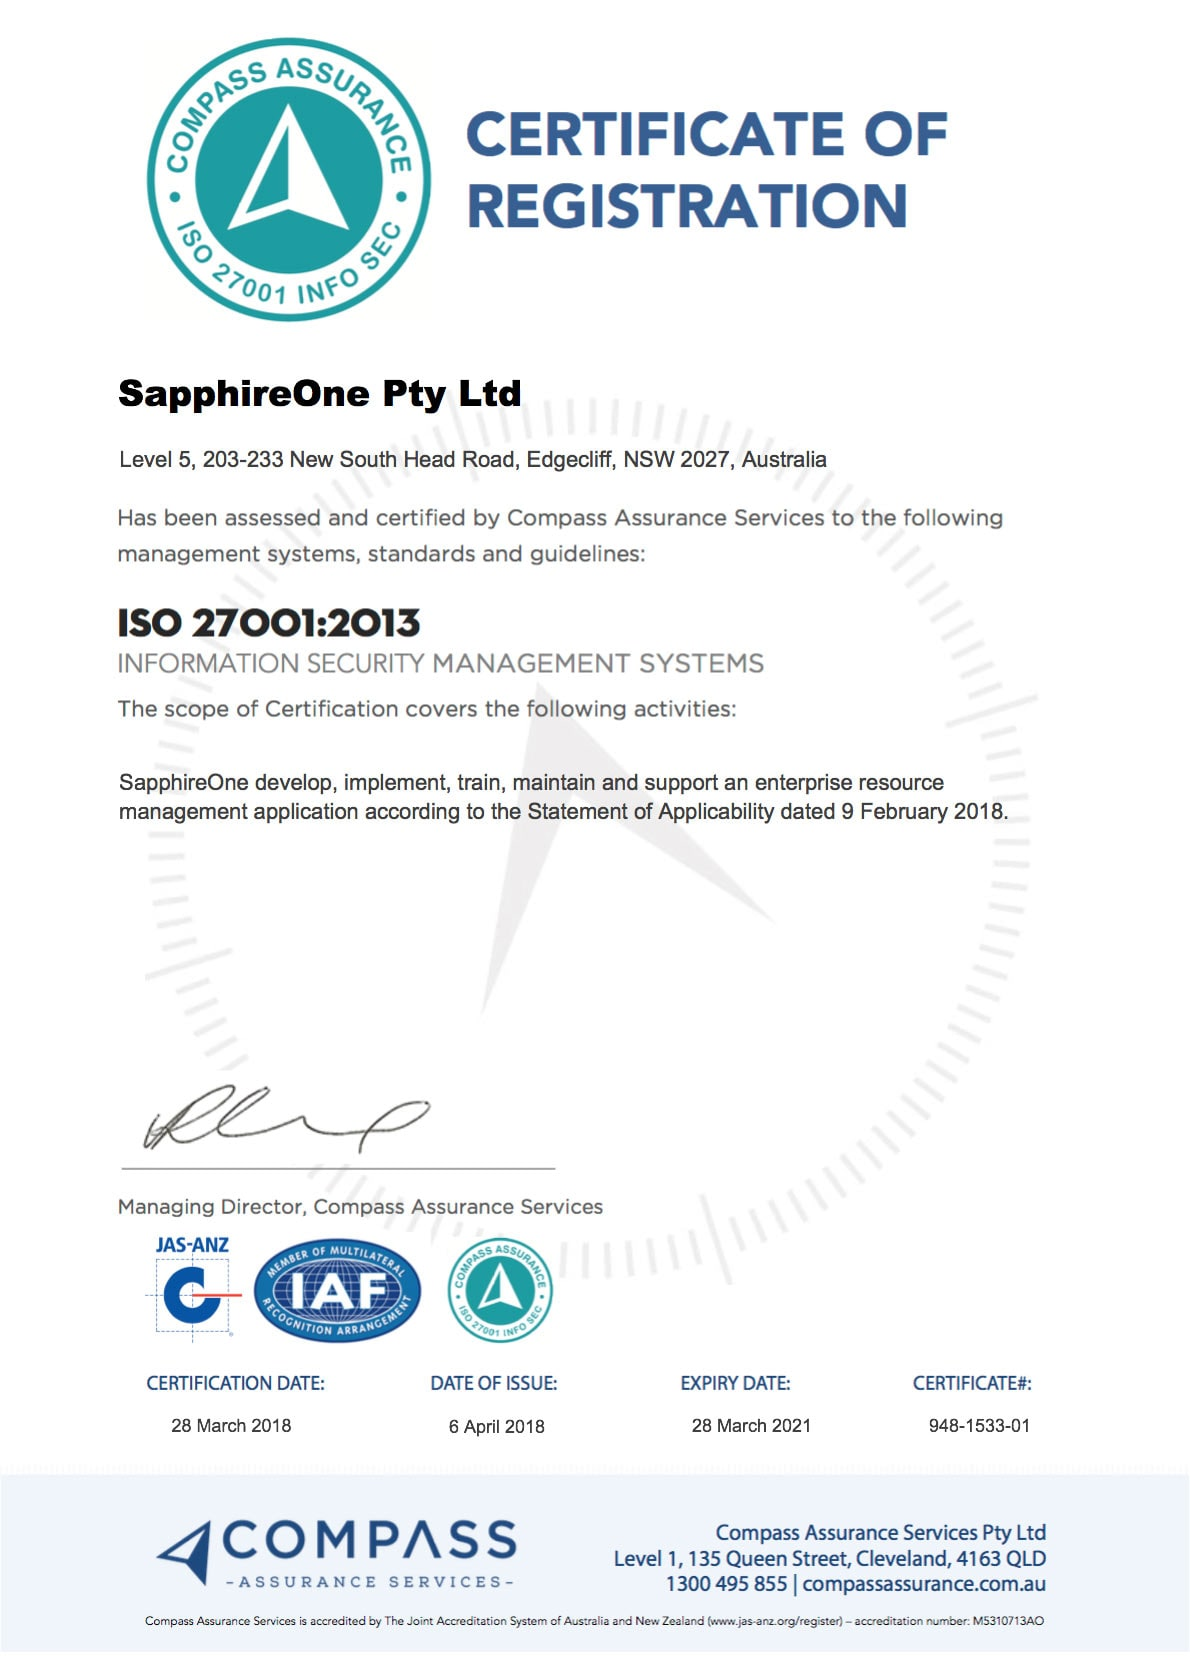 SapphireOne has been assessed and certified by Compass Assurance Services for ISO 27001